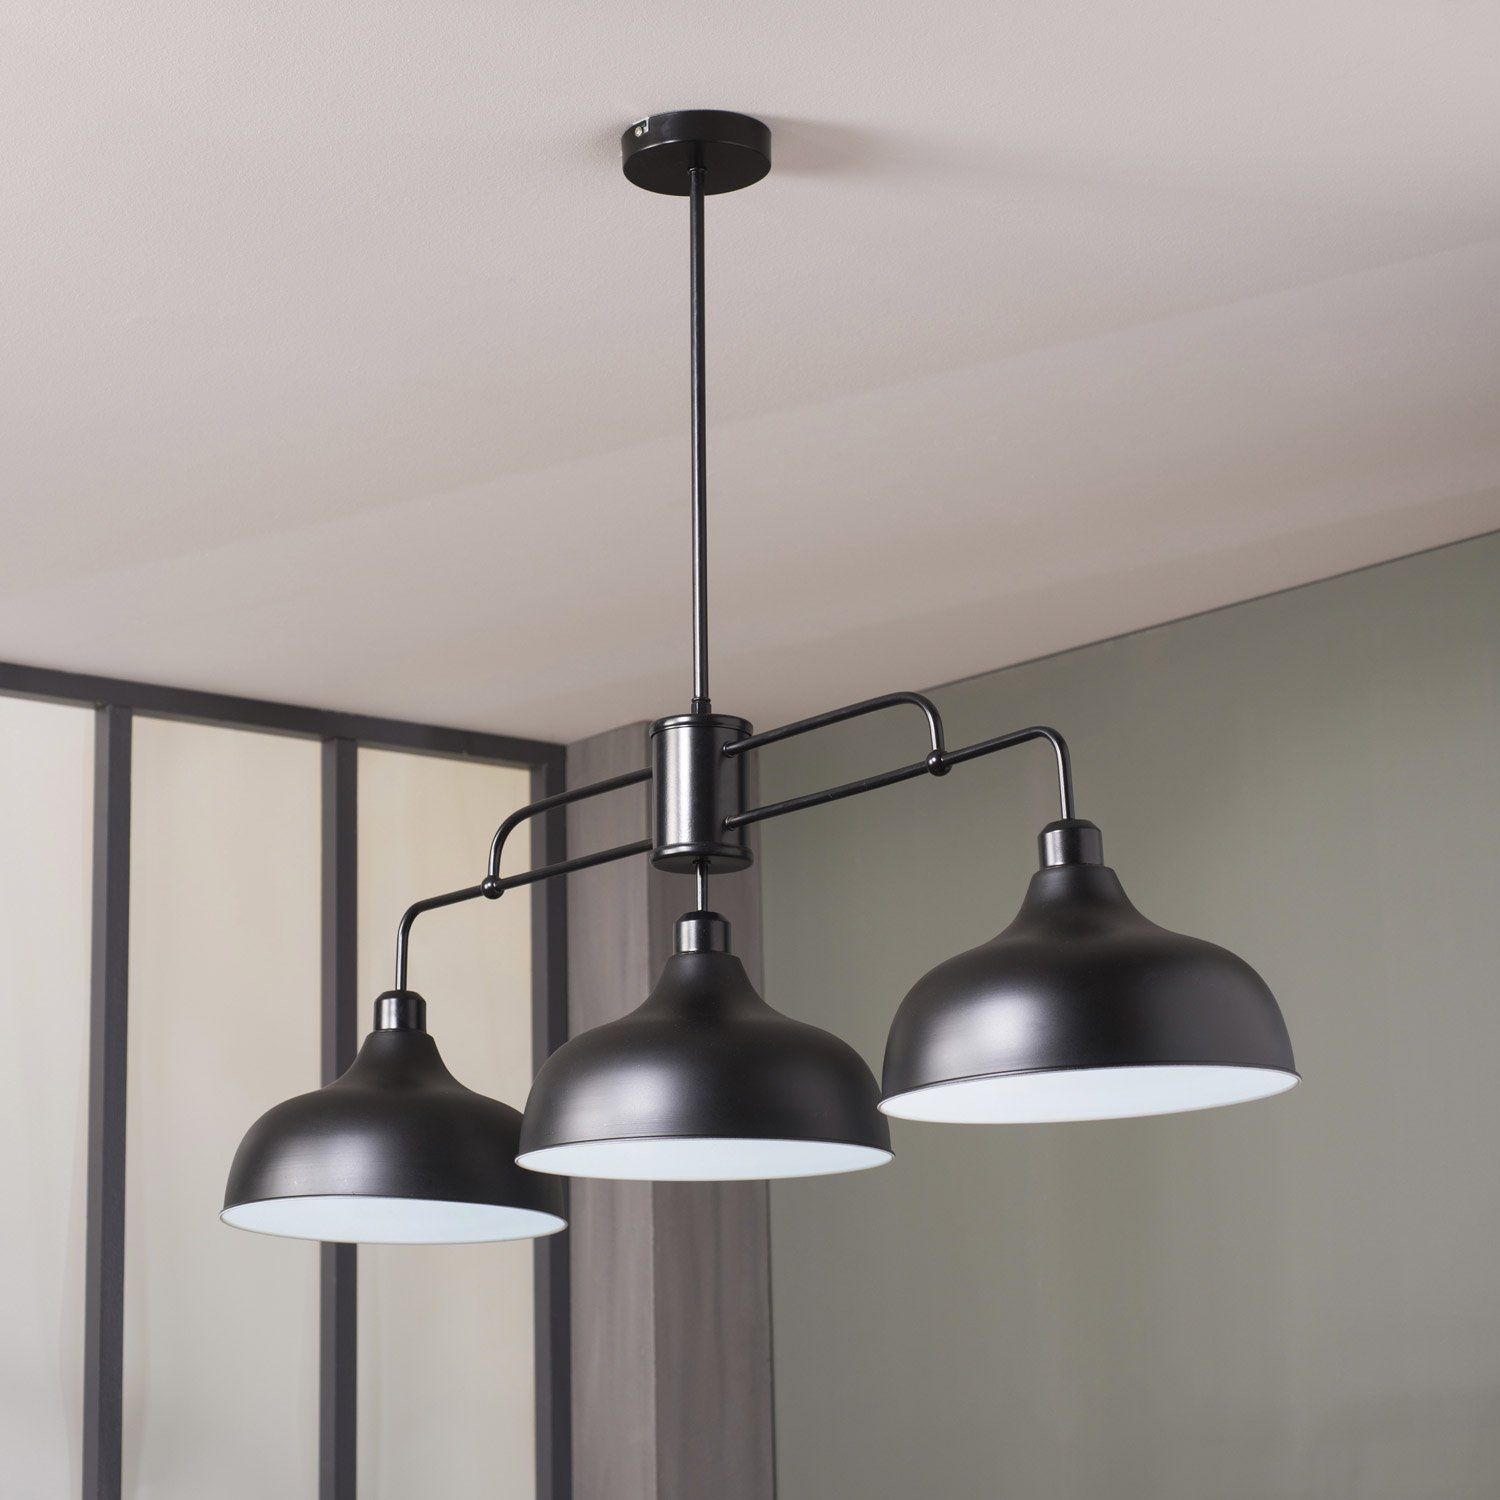 Plafonnier et suspension chez spot luminaire design for Suspension plafonnier